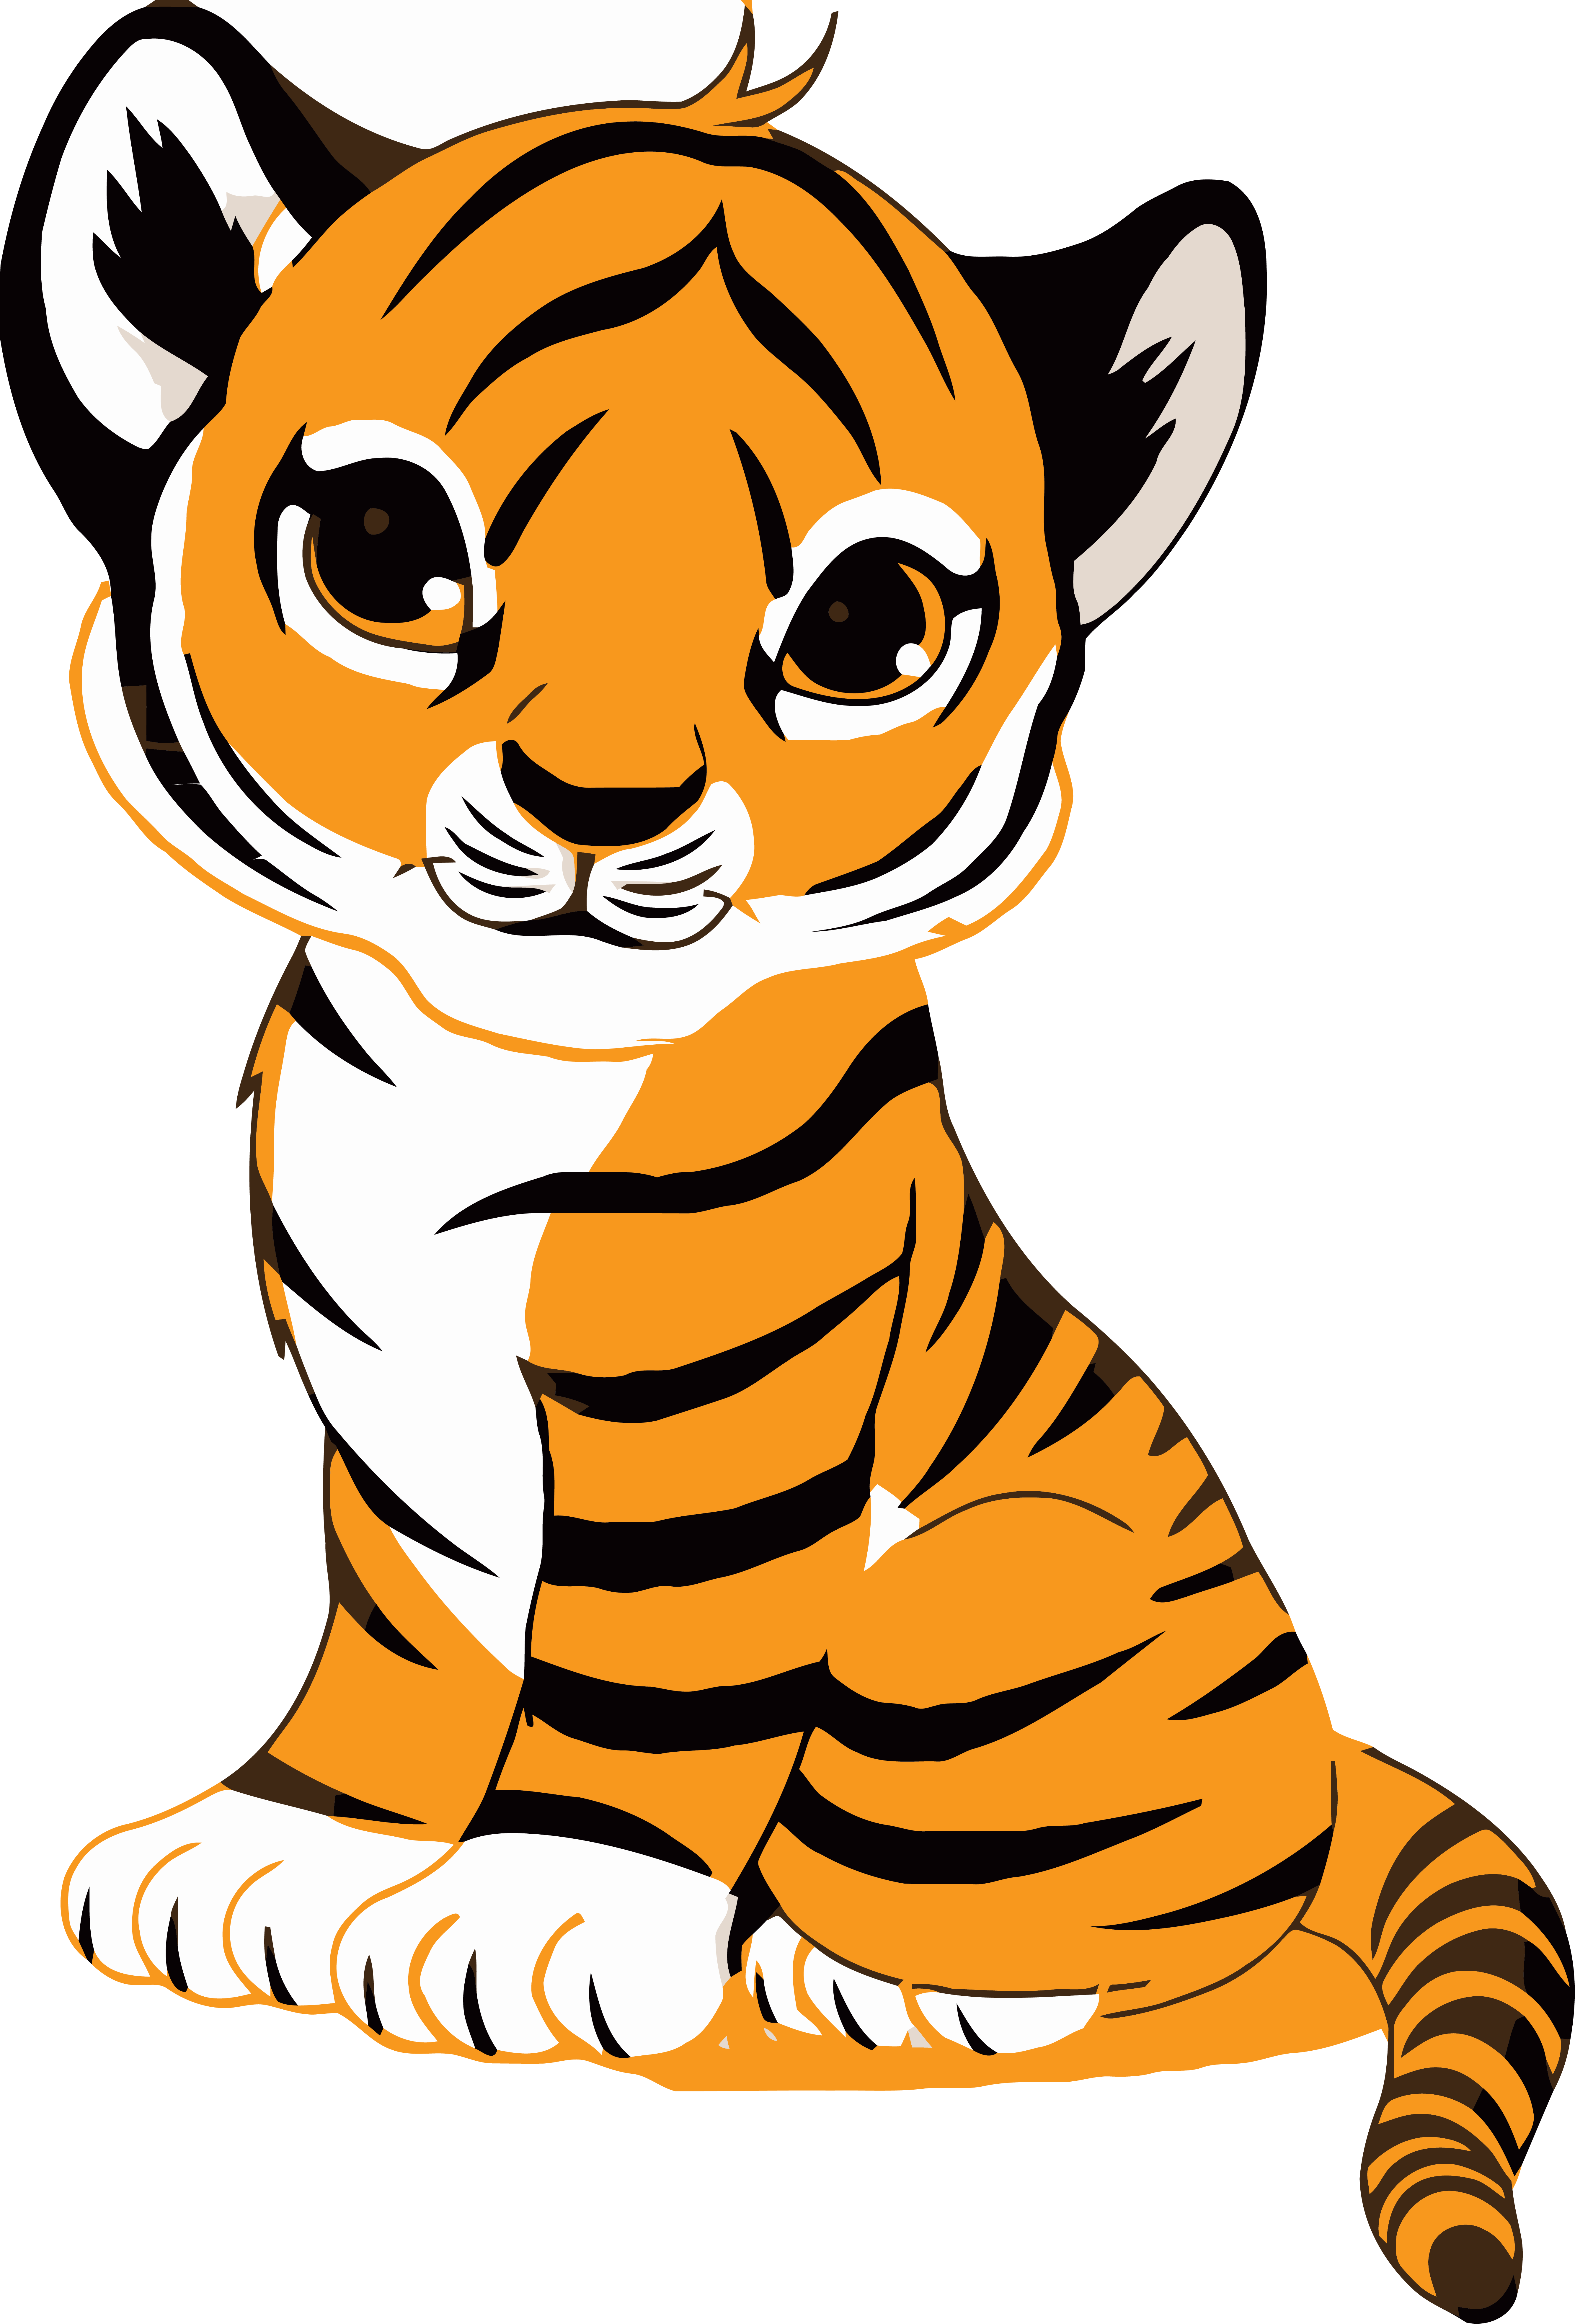 Tiger in a jeep clipart clip art library Tiger Face Clip Art Royalty Free Tiger Illustration Clipart ... clip art library